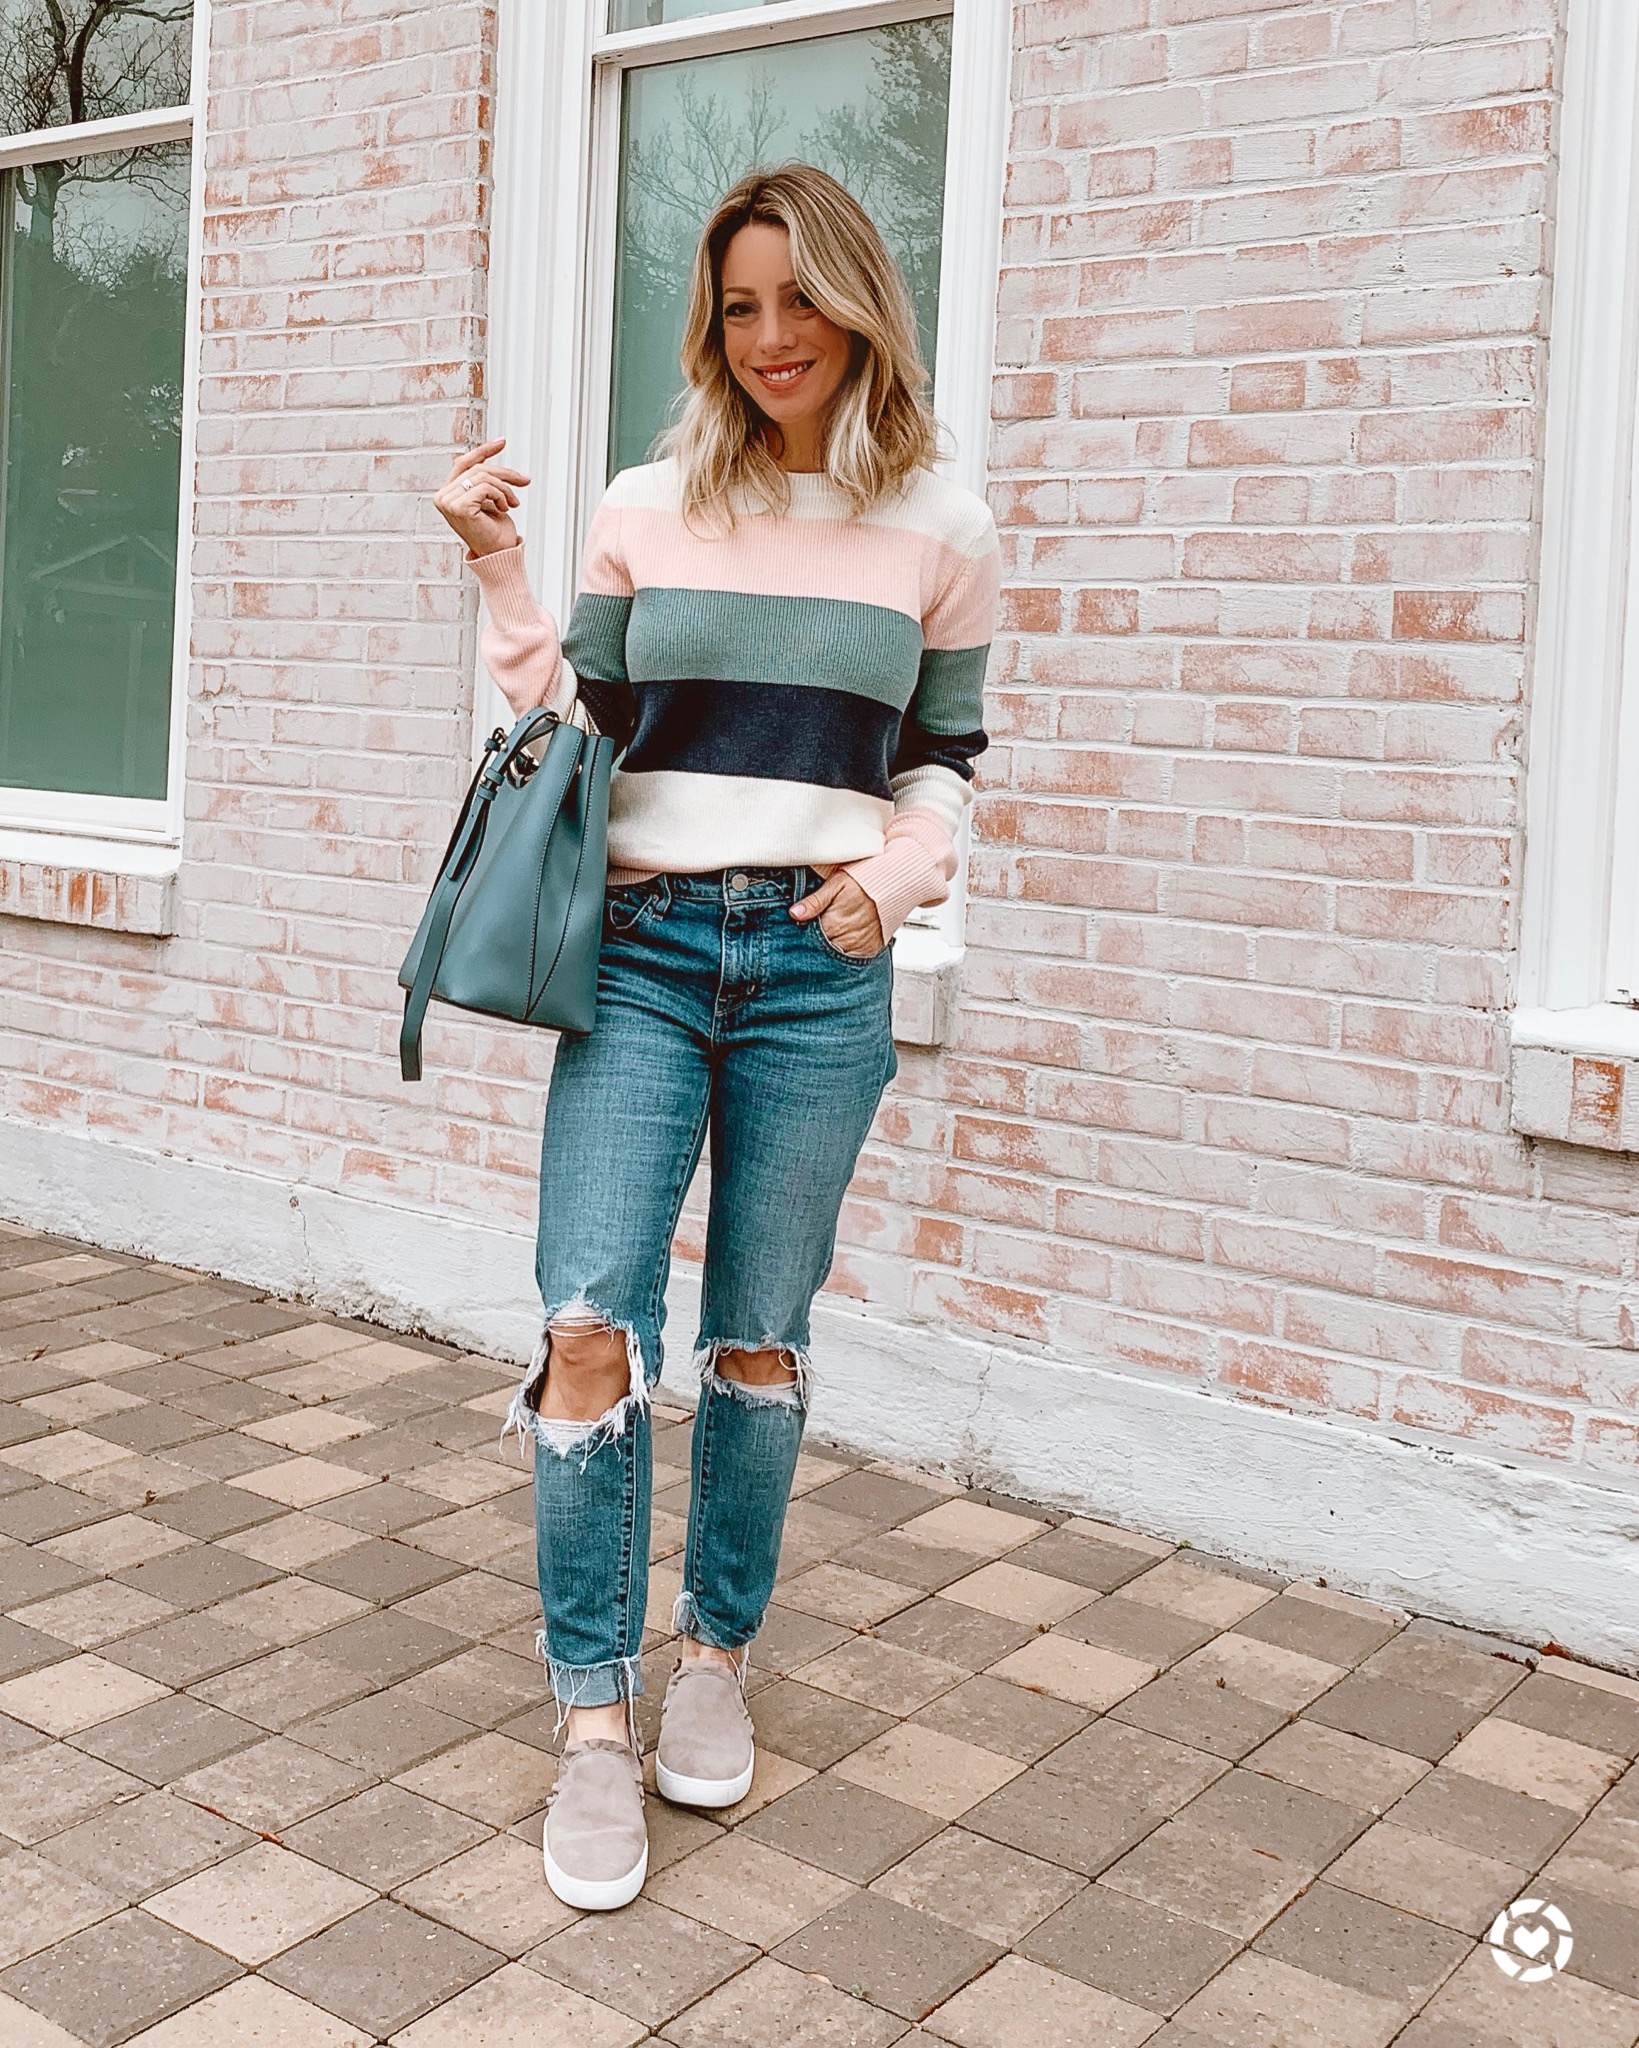 cute winter outfit - striped sweater and ripped jeans